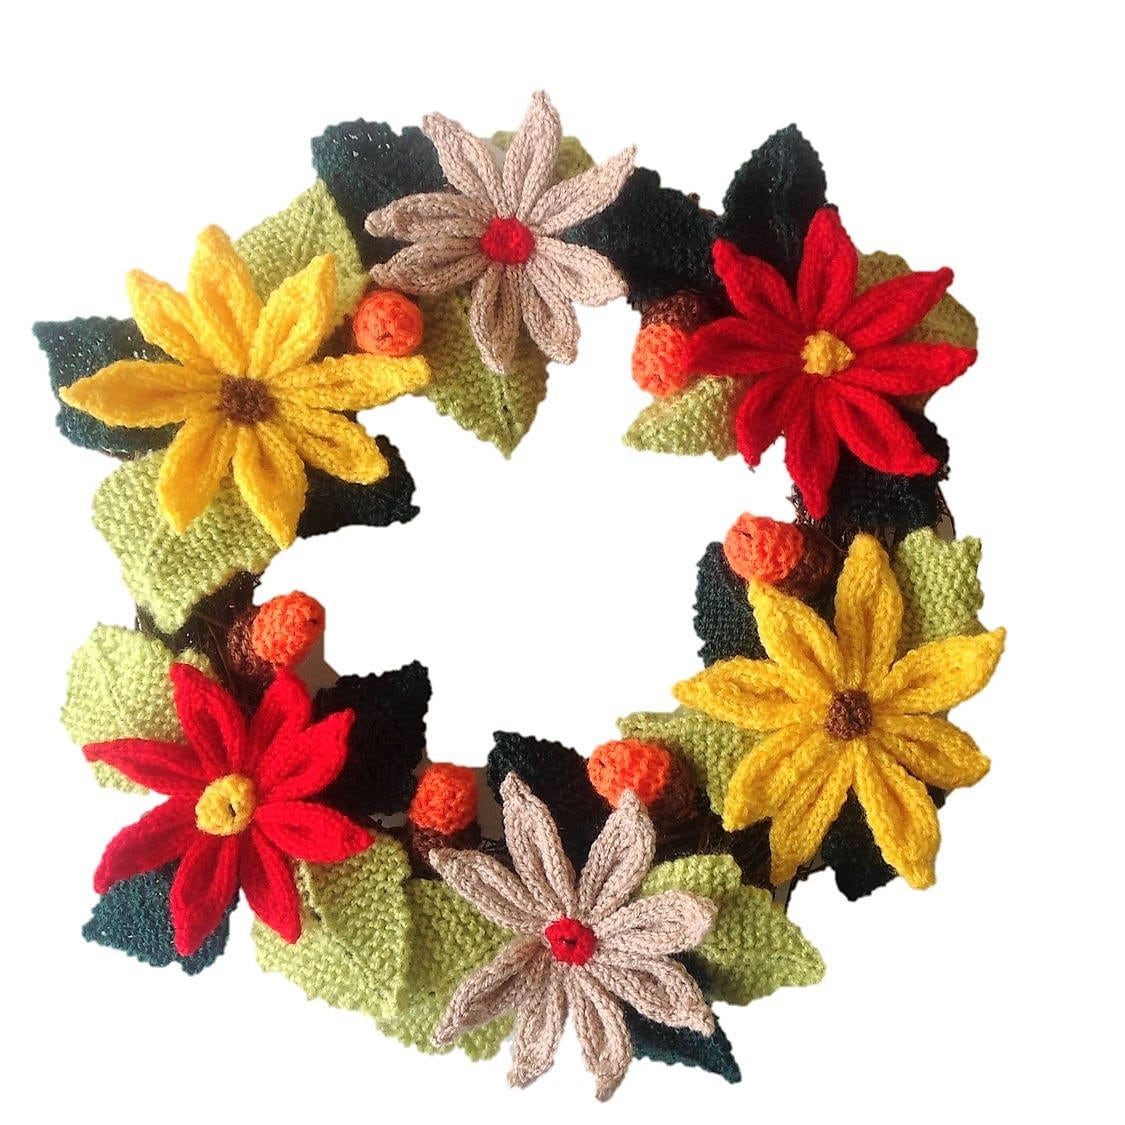 Knitted Christmas Wreath, Xmas Knitting pattern, Christmas flowers ...